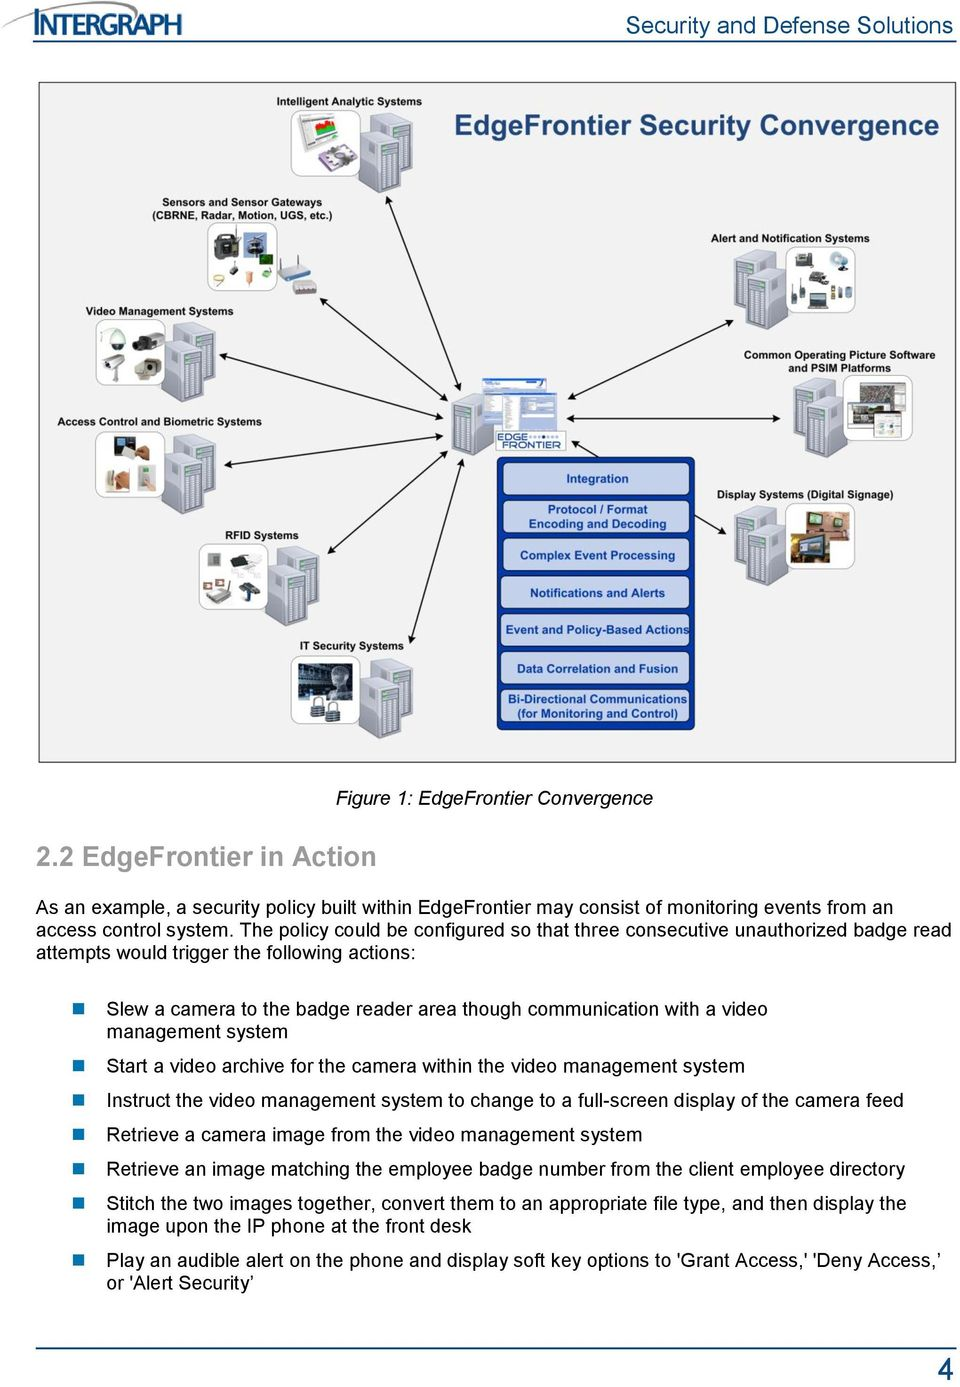 management system Start a video archive for the camera within the video management system Instruct the video management system to change to a full-screen display of the camera feed Retrieve a camera